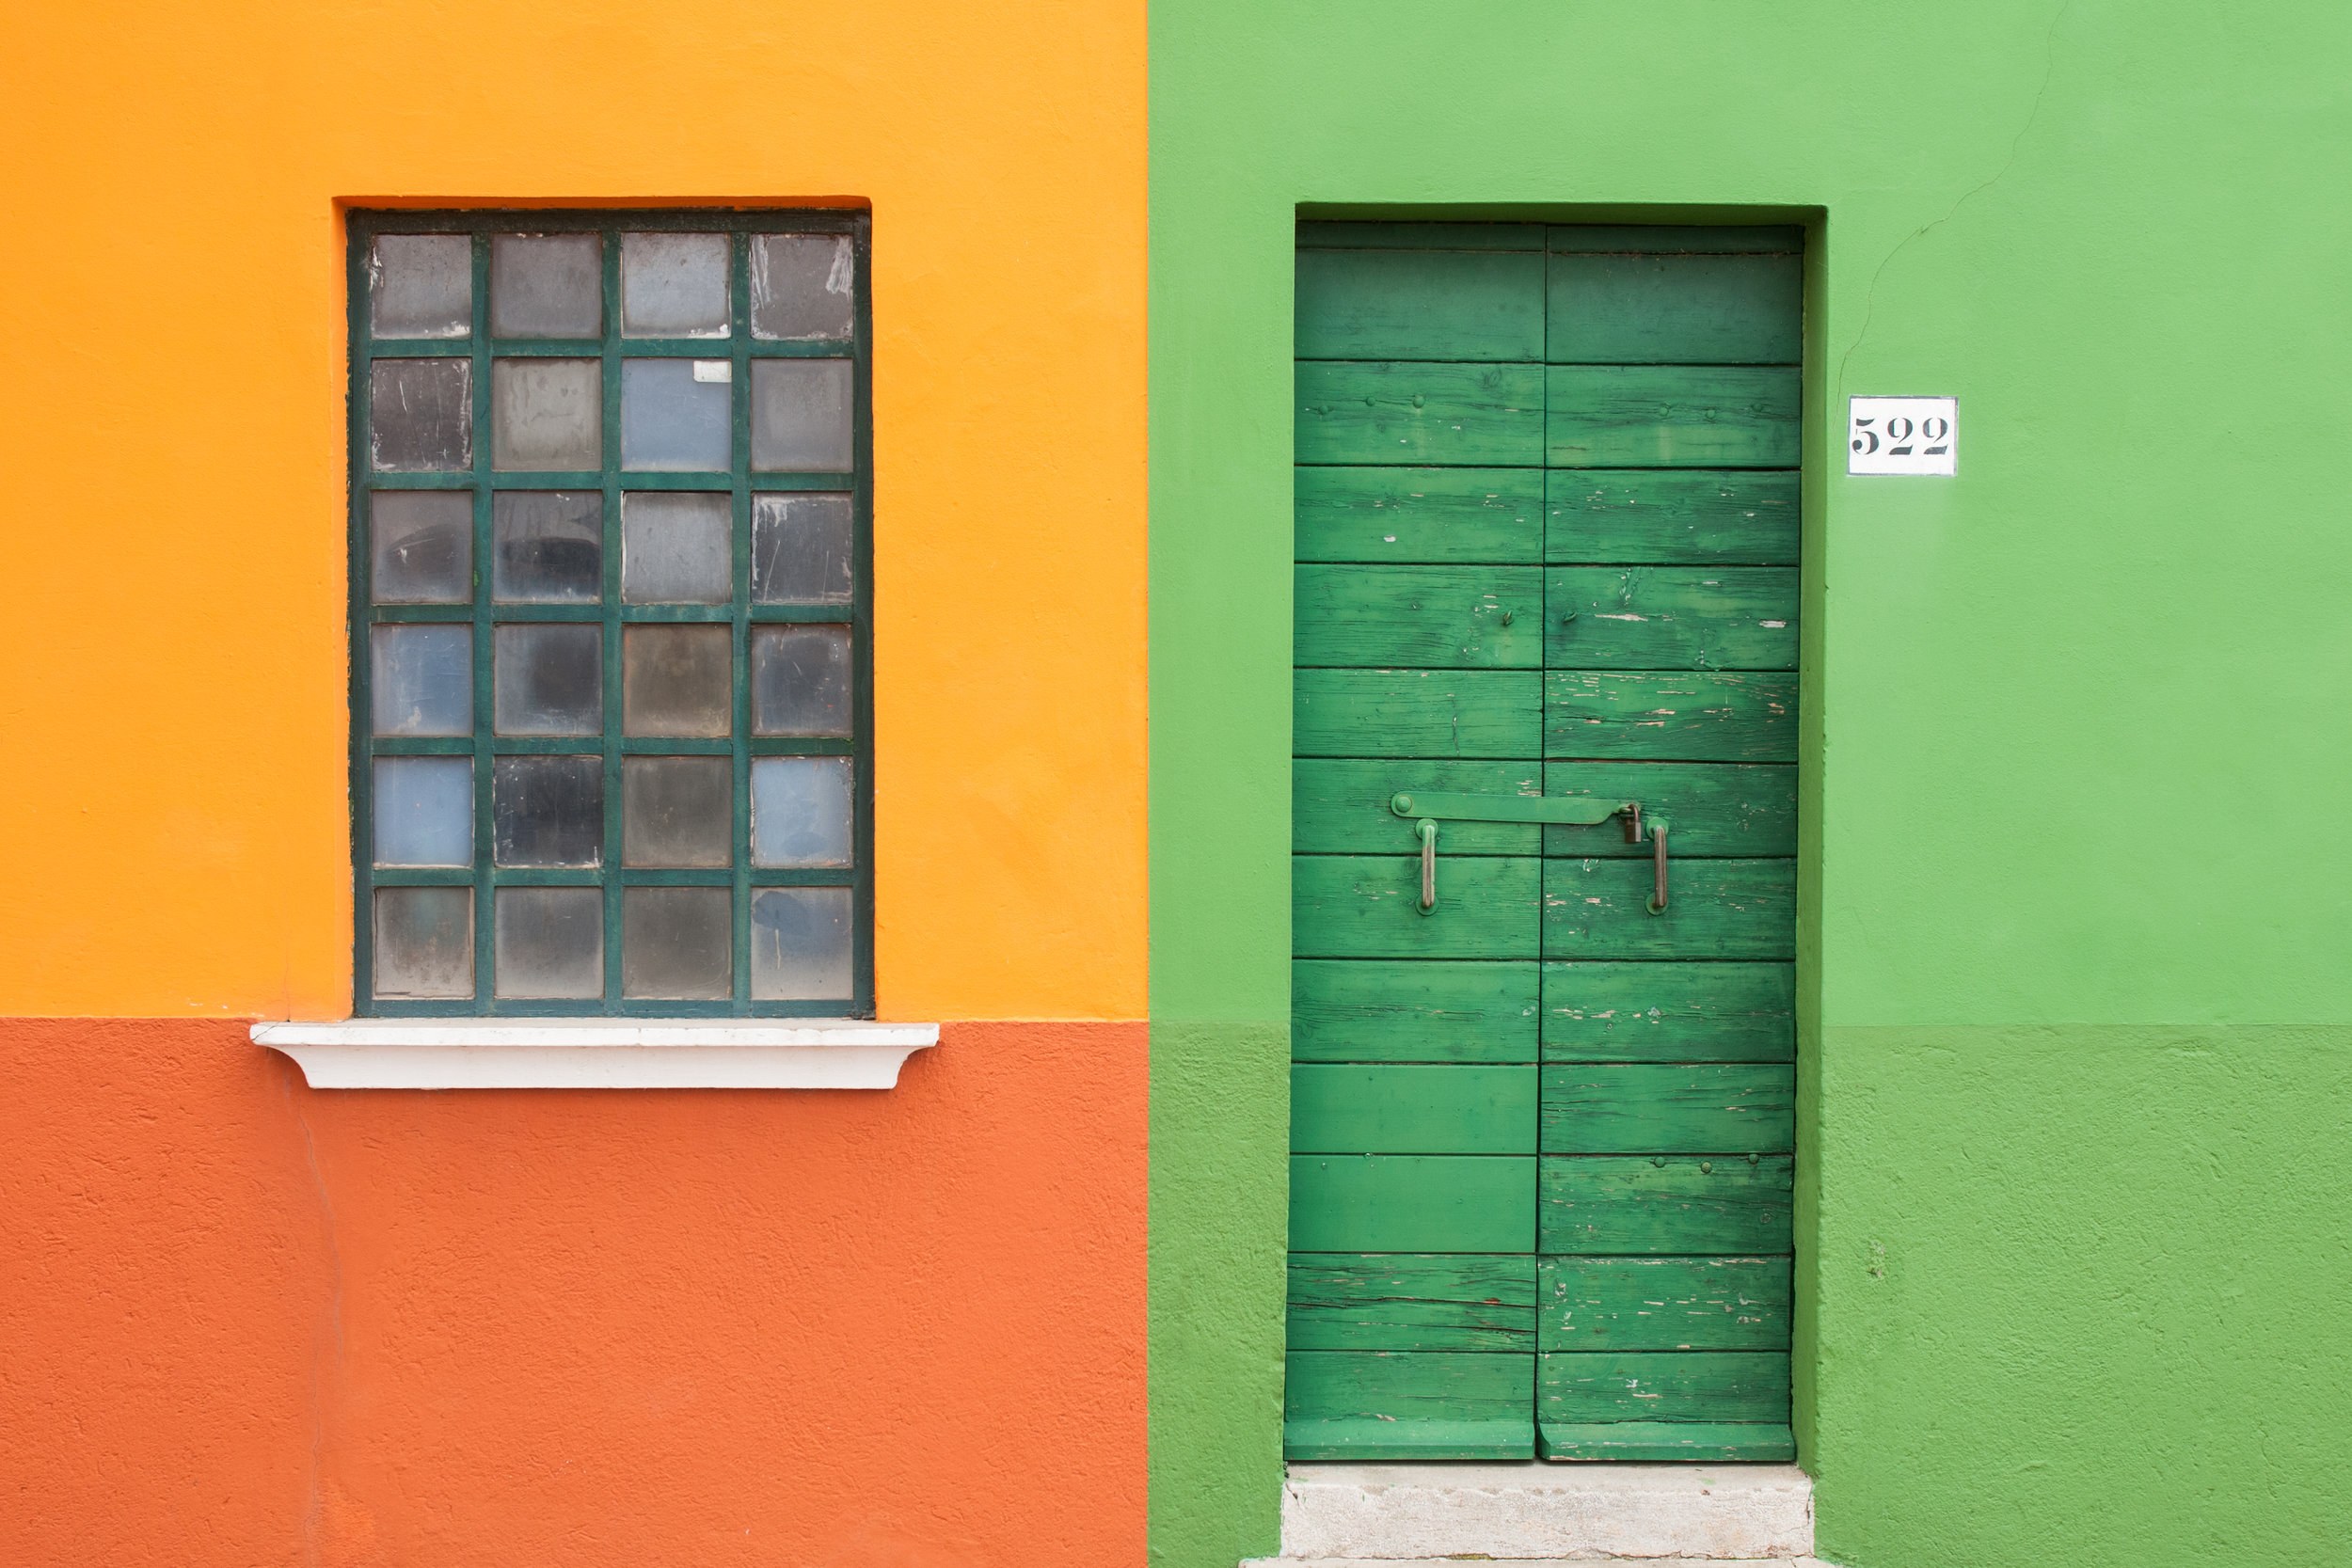 A window and a door on green, red and yellow wall in the island of Burano, Venice, Italy.